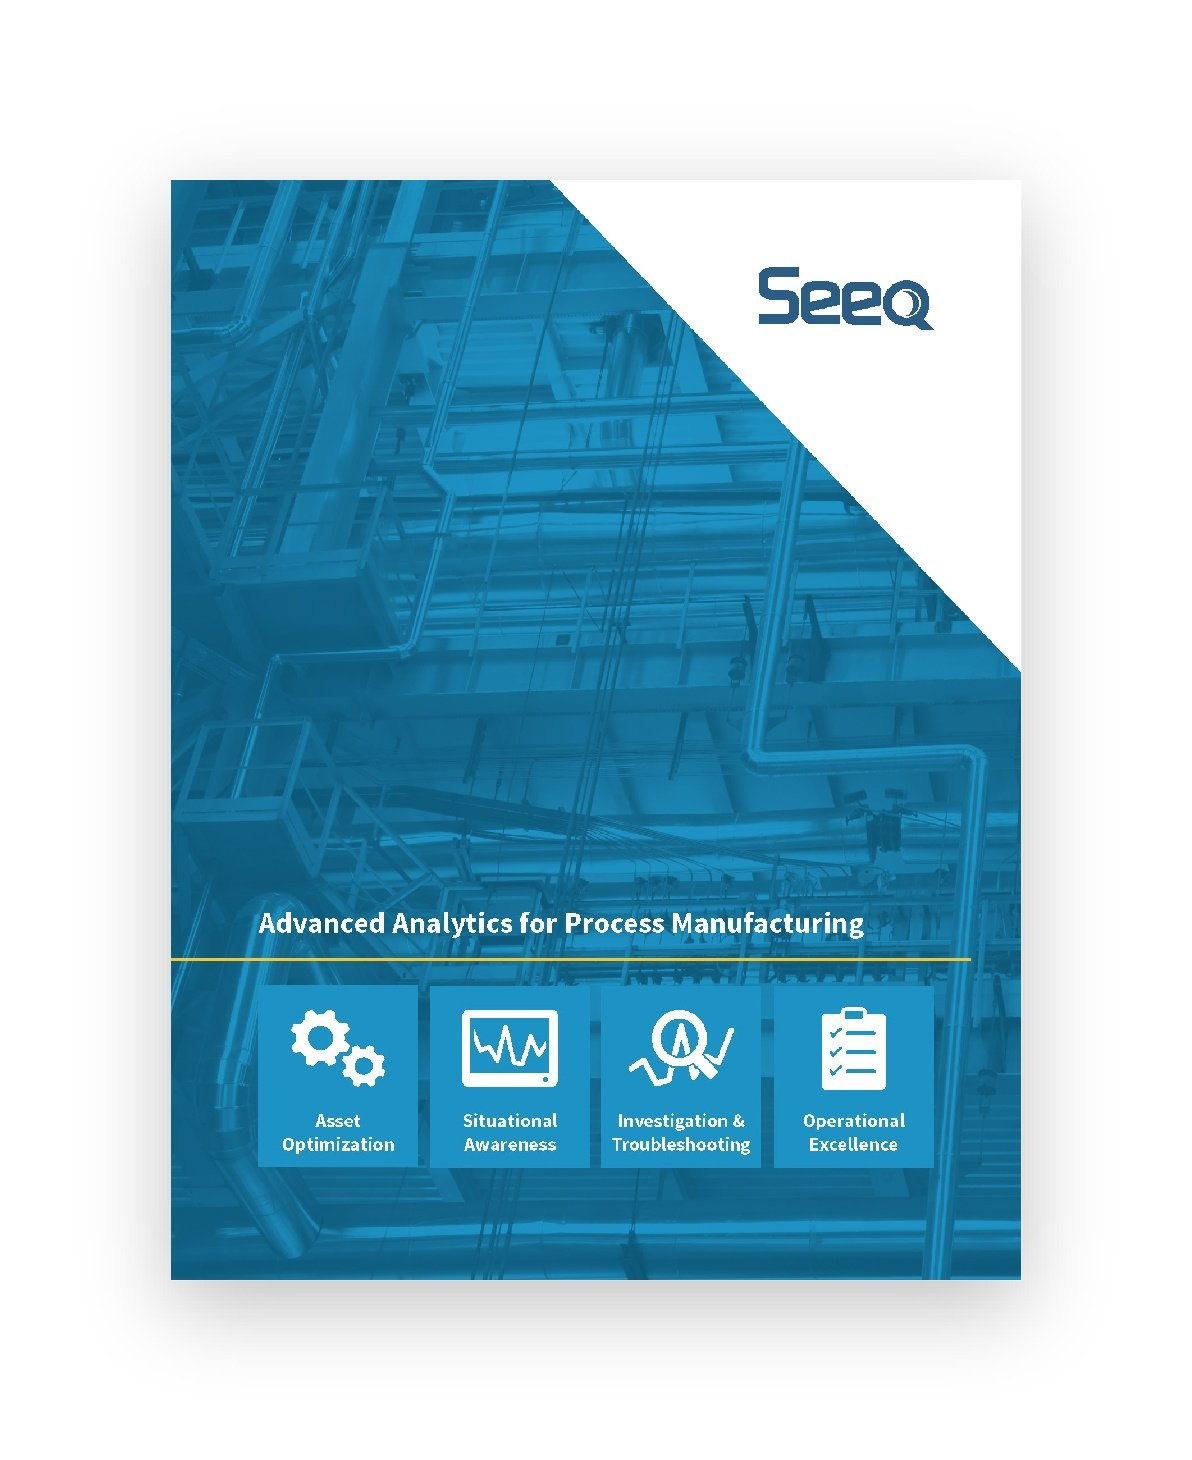 Seeq_Overview-Brochure_20181002_300ppi.jpg